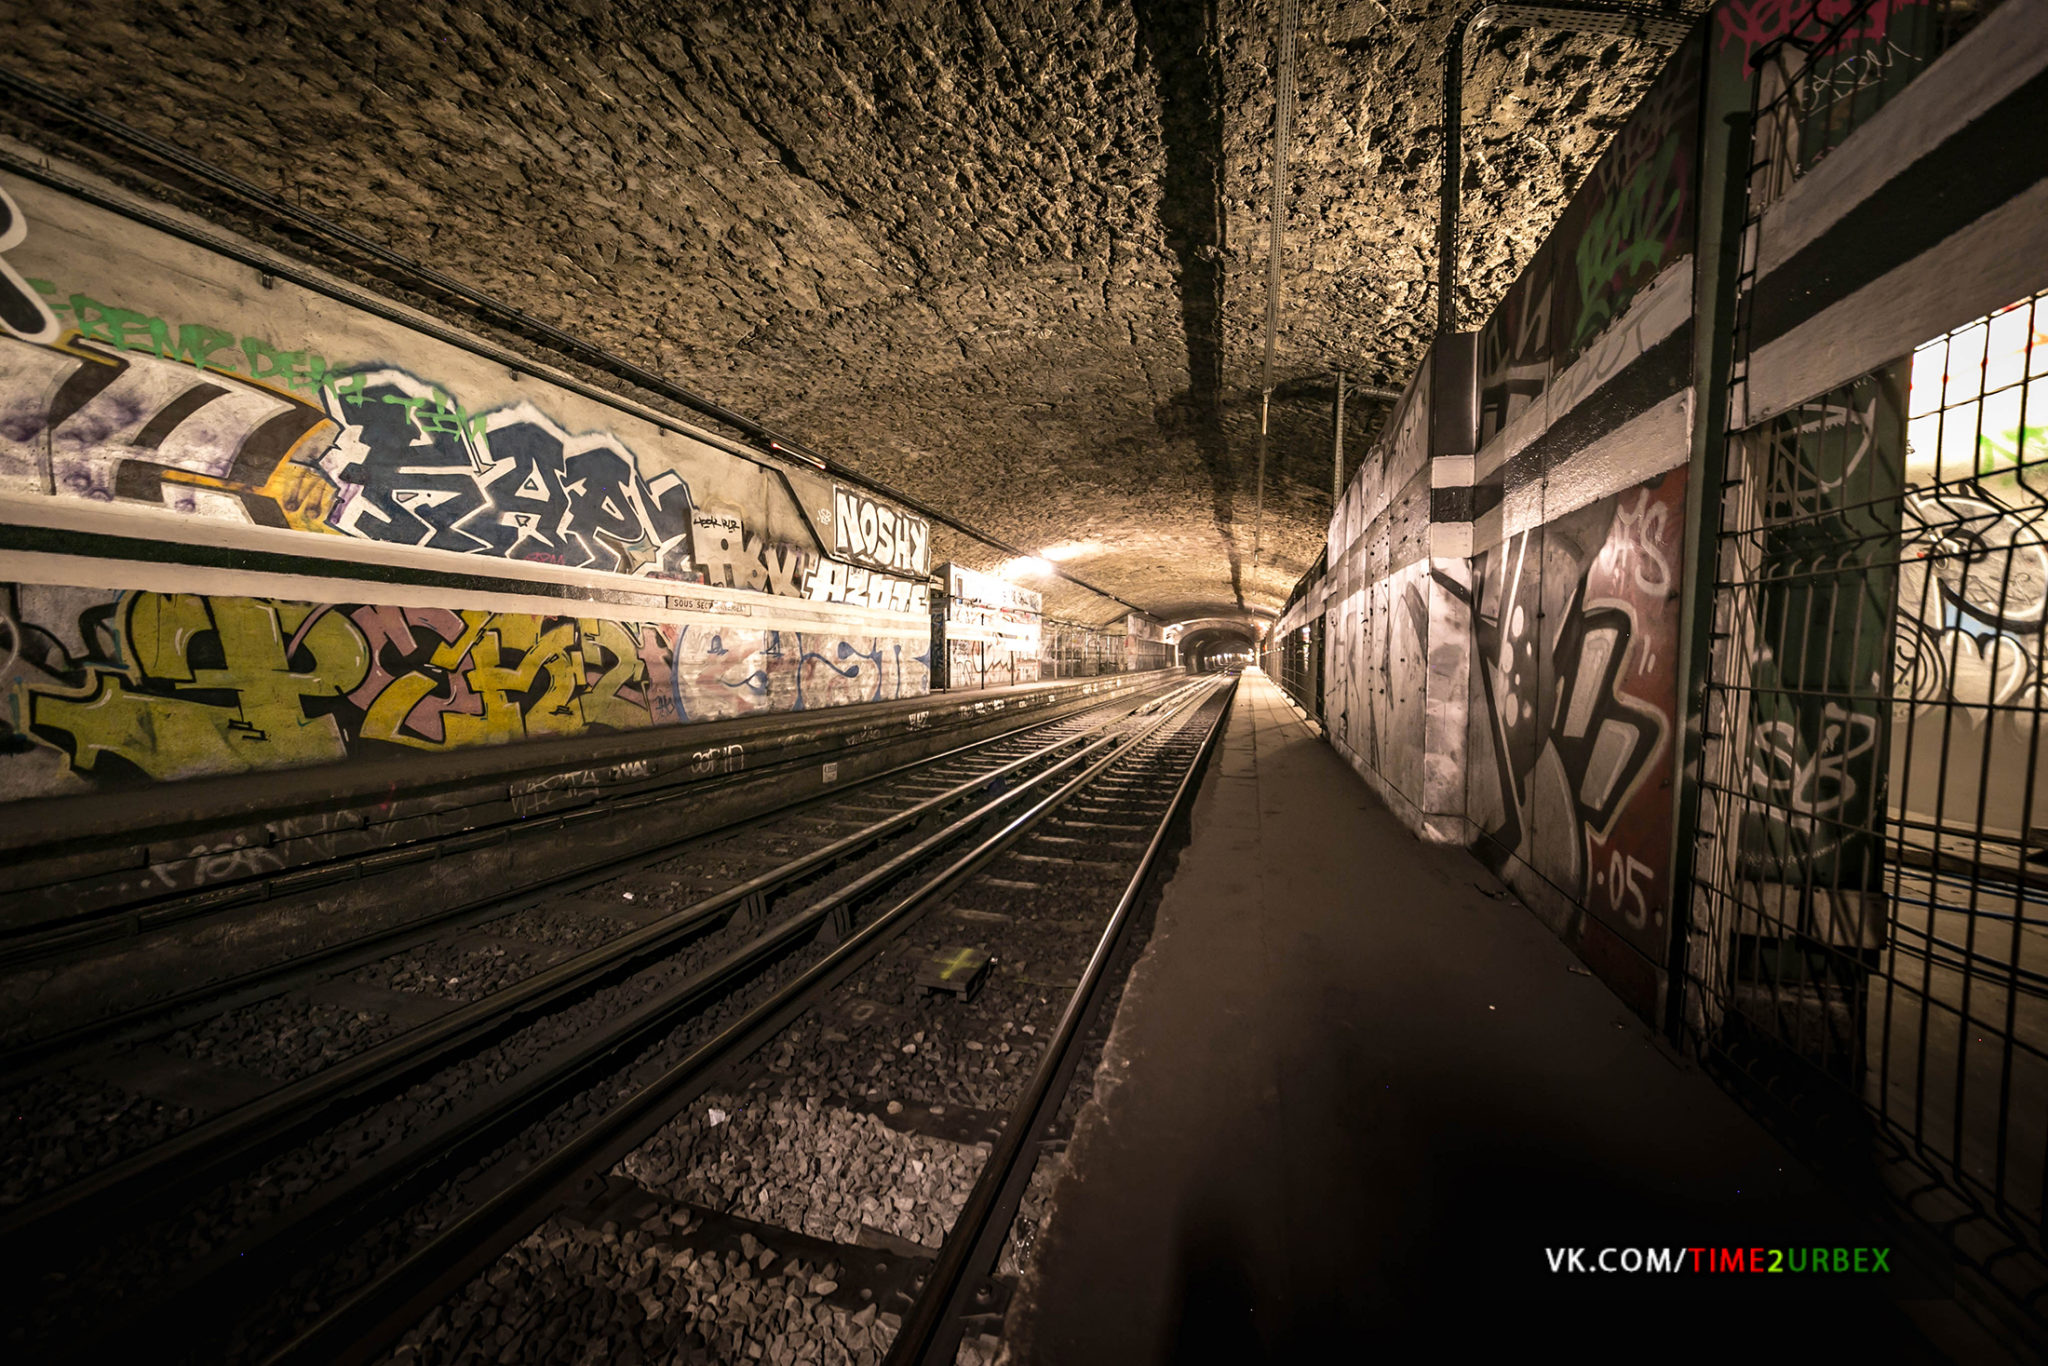 31 7 GHOST STATIONS OF THE PARIS METRO AND HOW TO GET INTO THE ILLEGALLY + UNUSUAL TUNNELS + RER